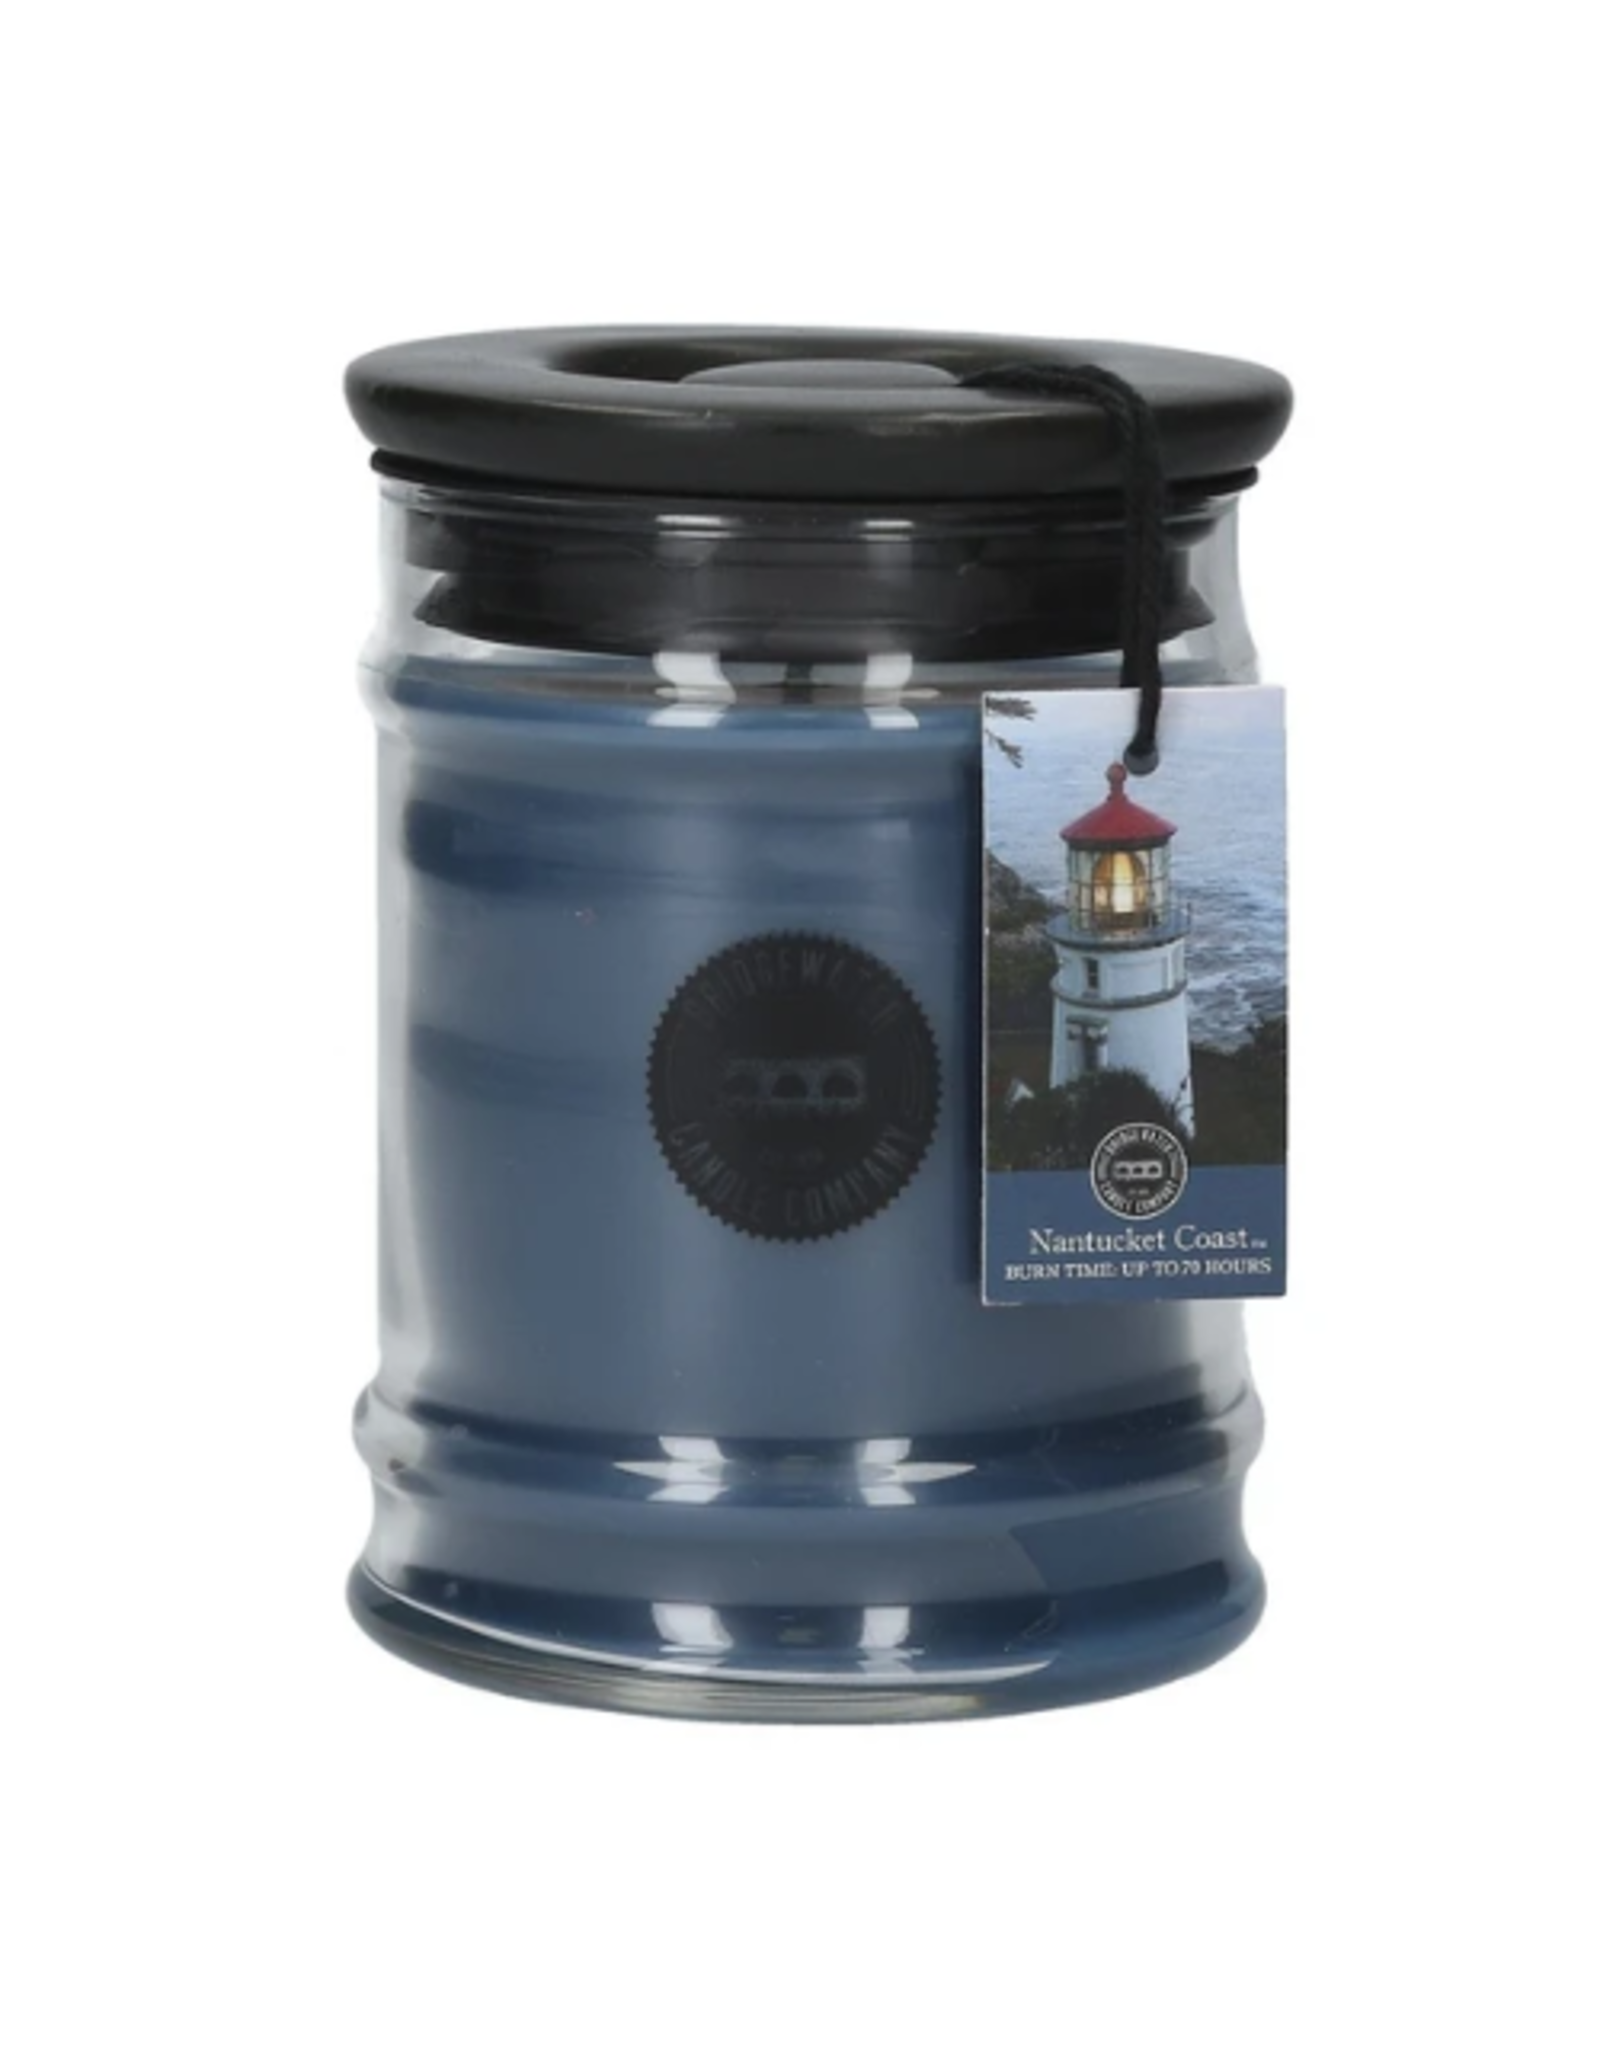 Nantucket Coast Small Jar Candle